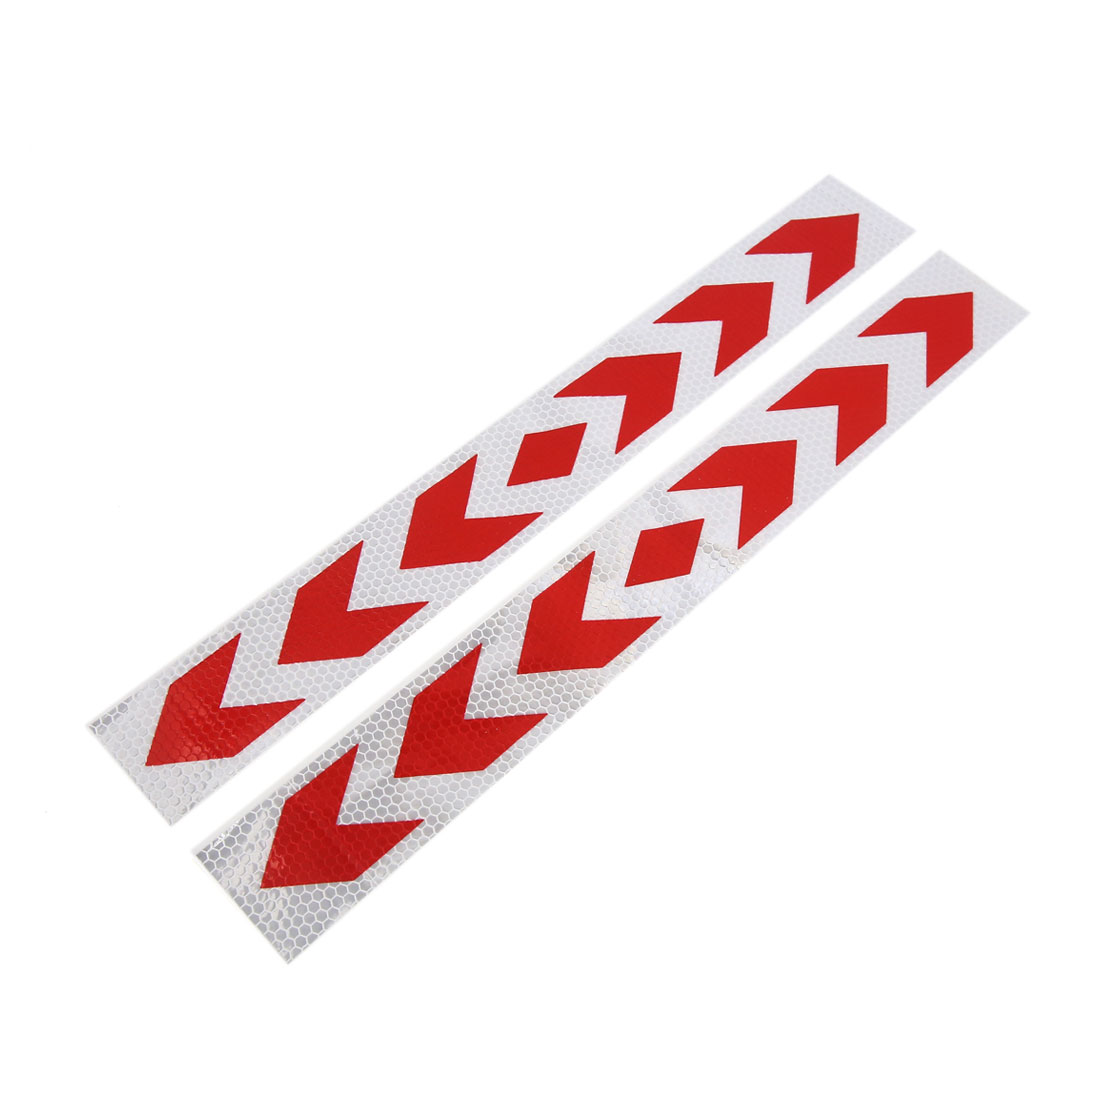 2Pcs Red Arrows Design Stick-on Conspicuity Reflective Safety Sticker Exterior Decal